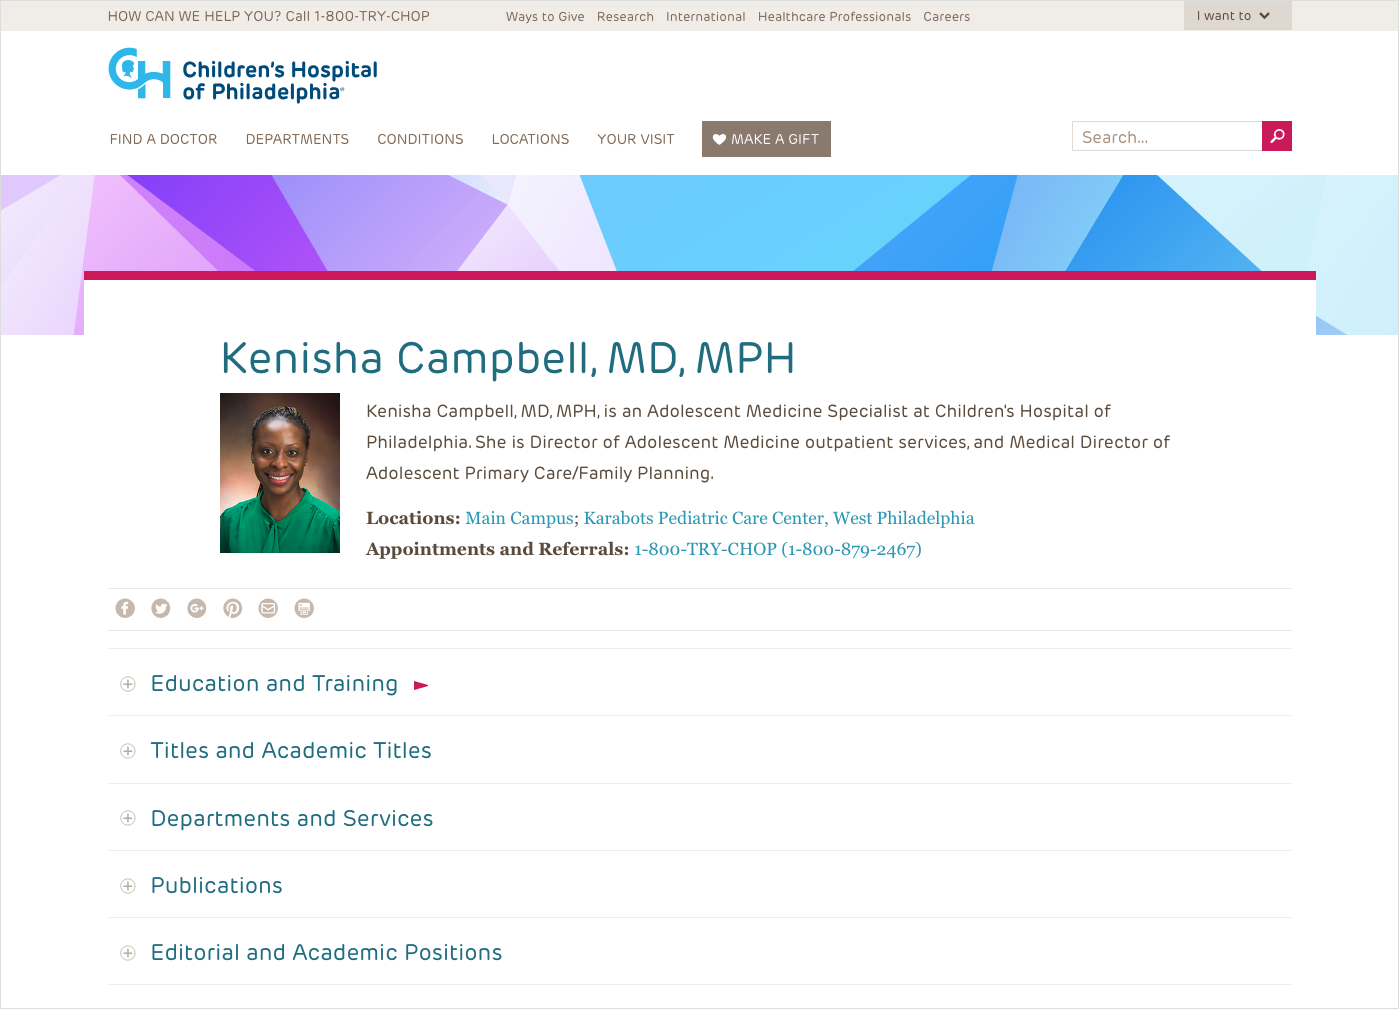 The Children's Hospital of Philadelphia presents secondary biographic information about its doctors using a simple, expandable accordion-style menu as part of its page design.